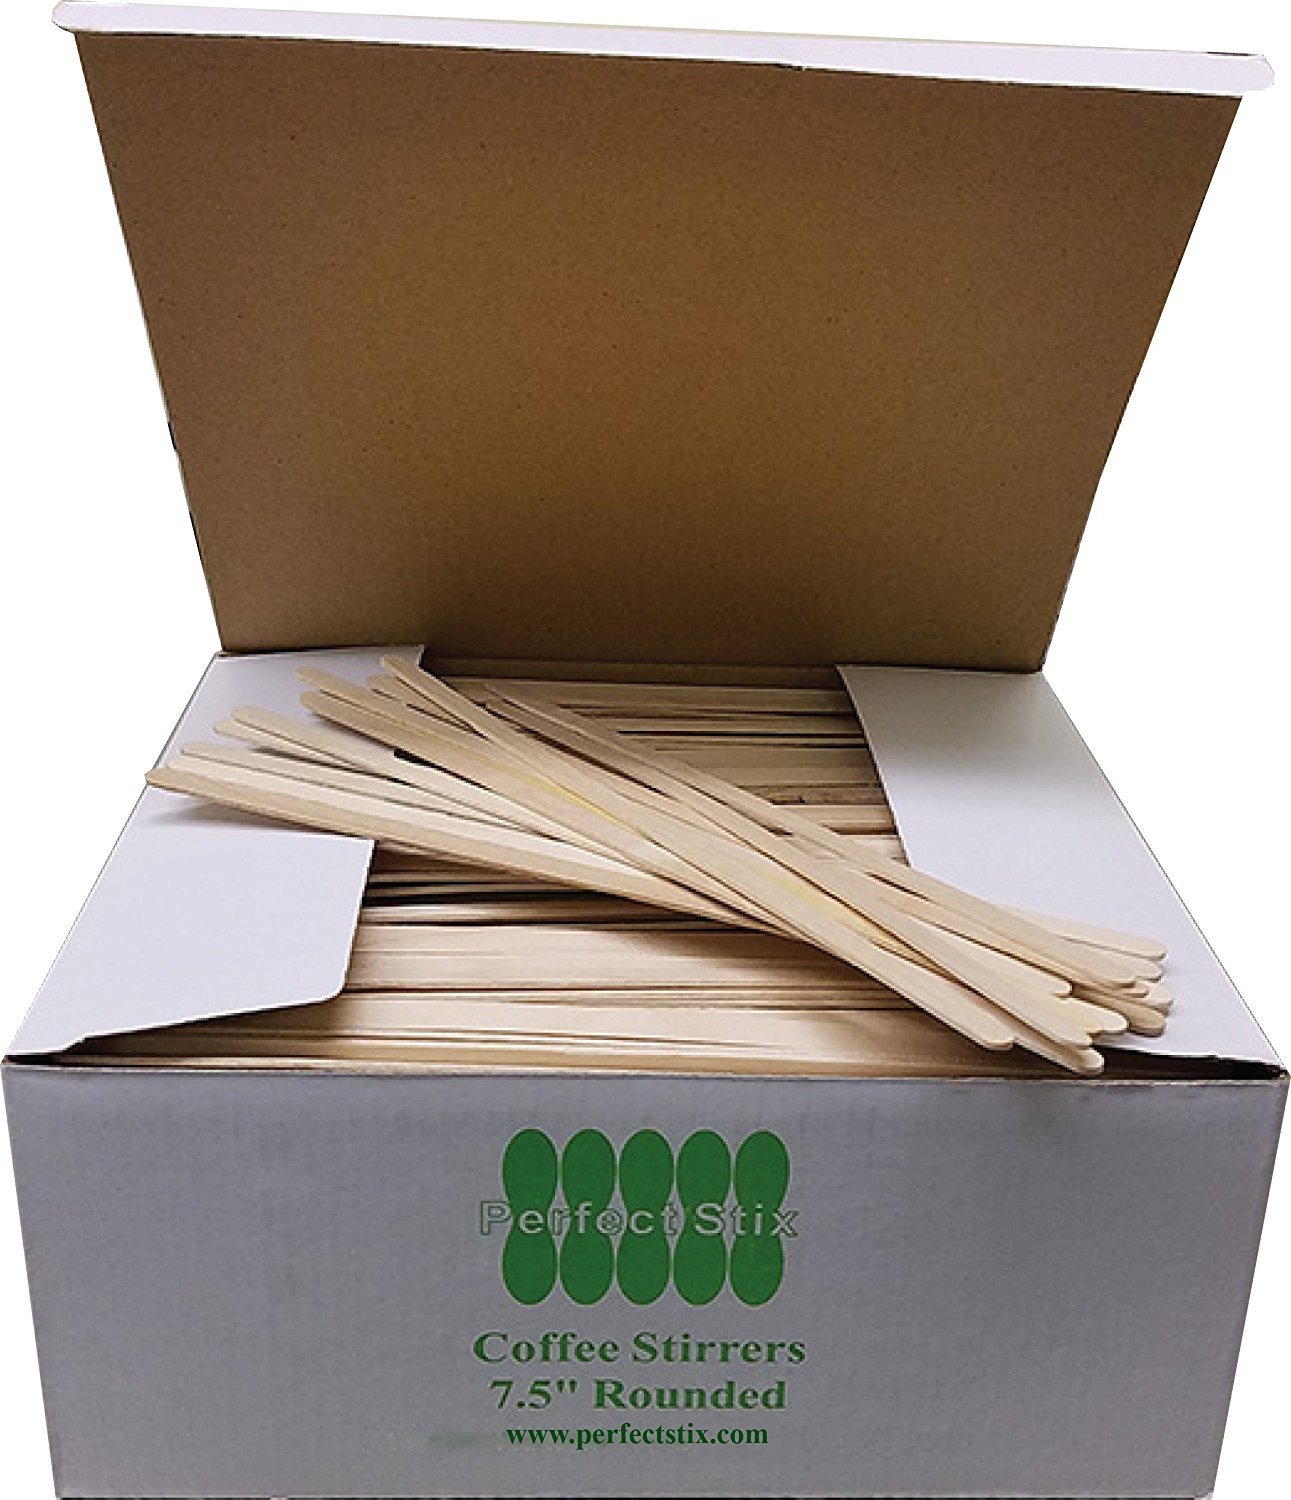 Perfect Stix Wooden Coffee Stirrer Stick, 7-1/2'' Length (Pack of 1,000)